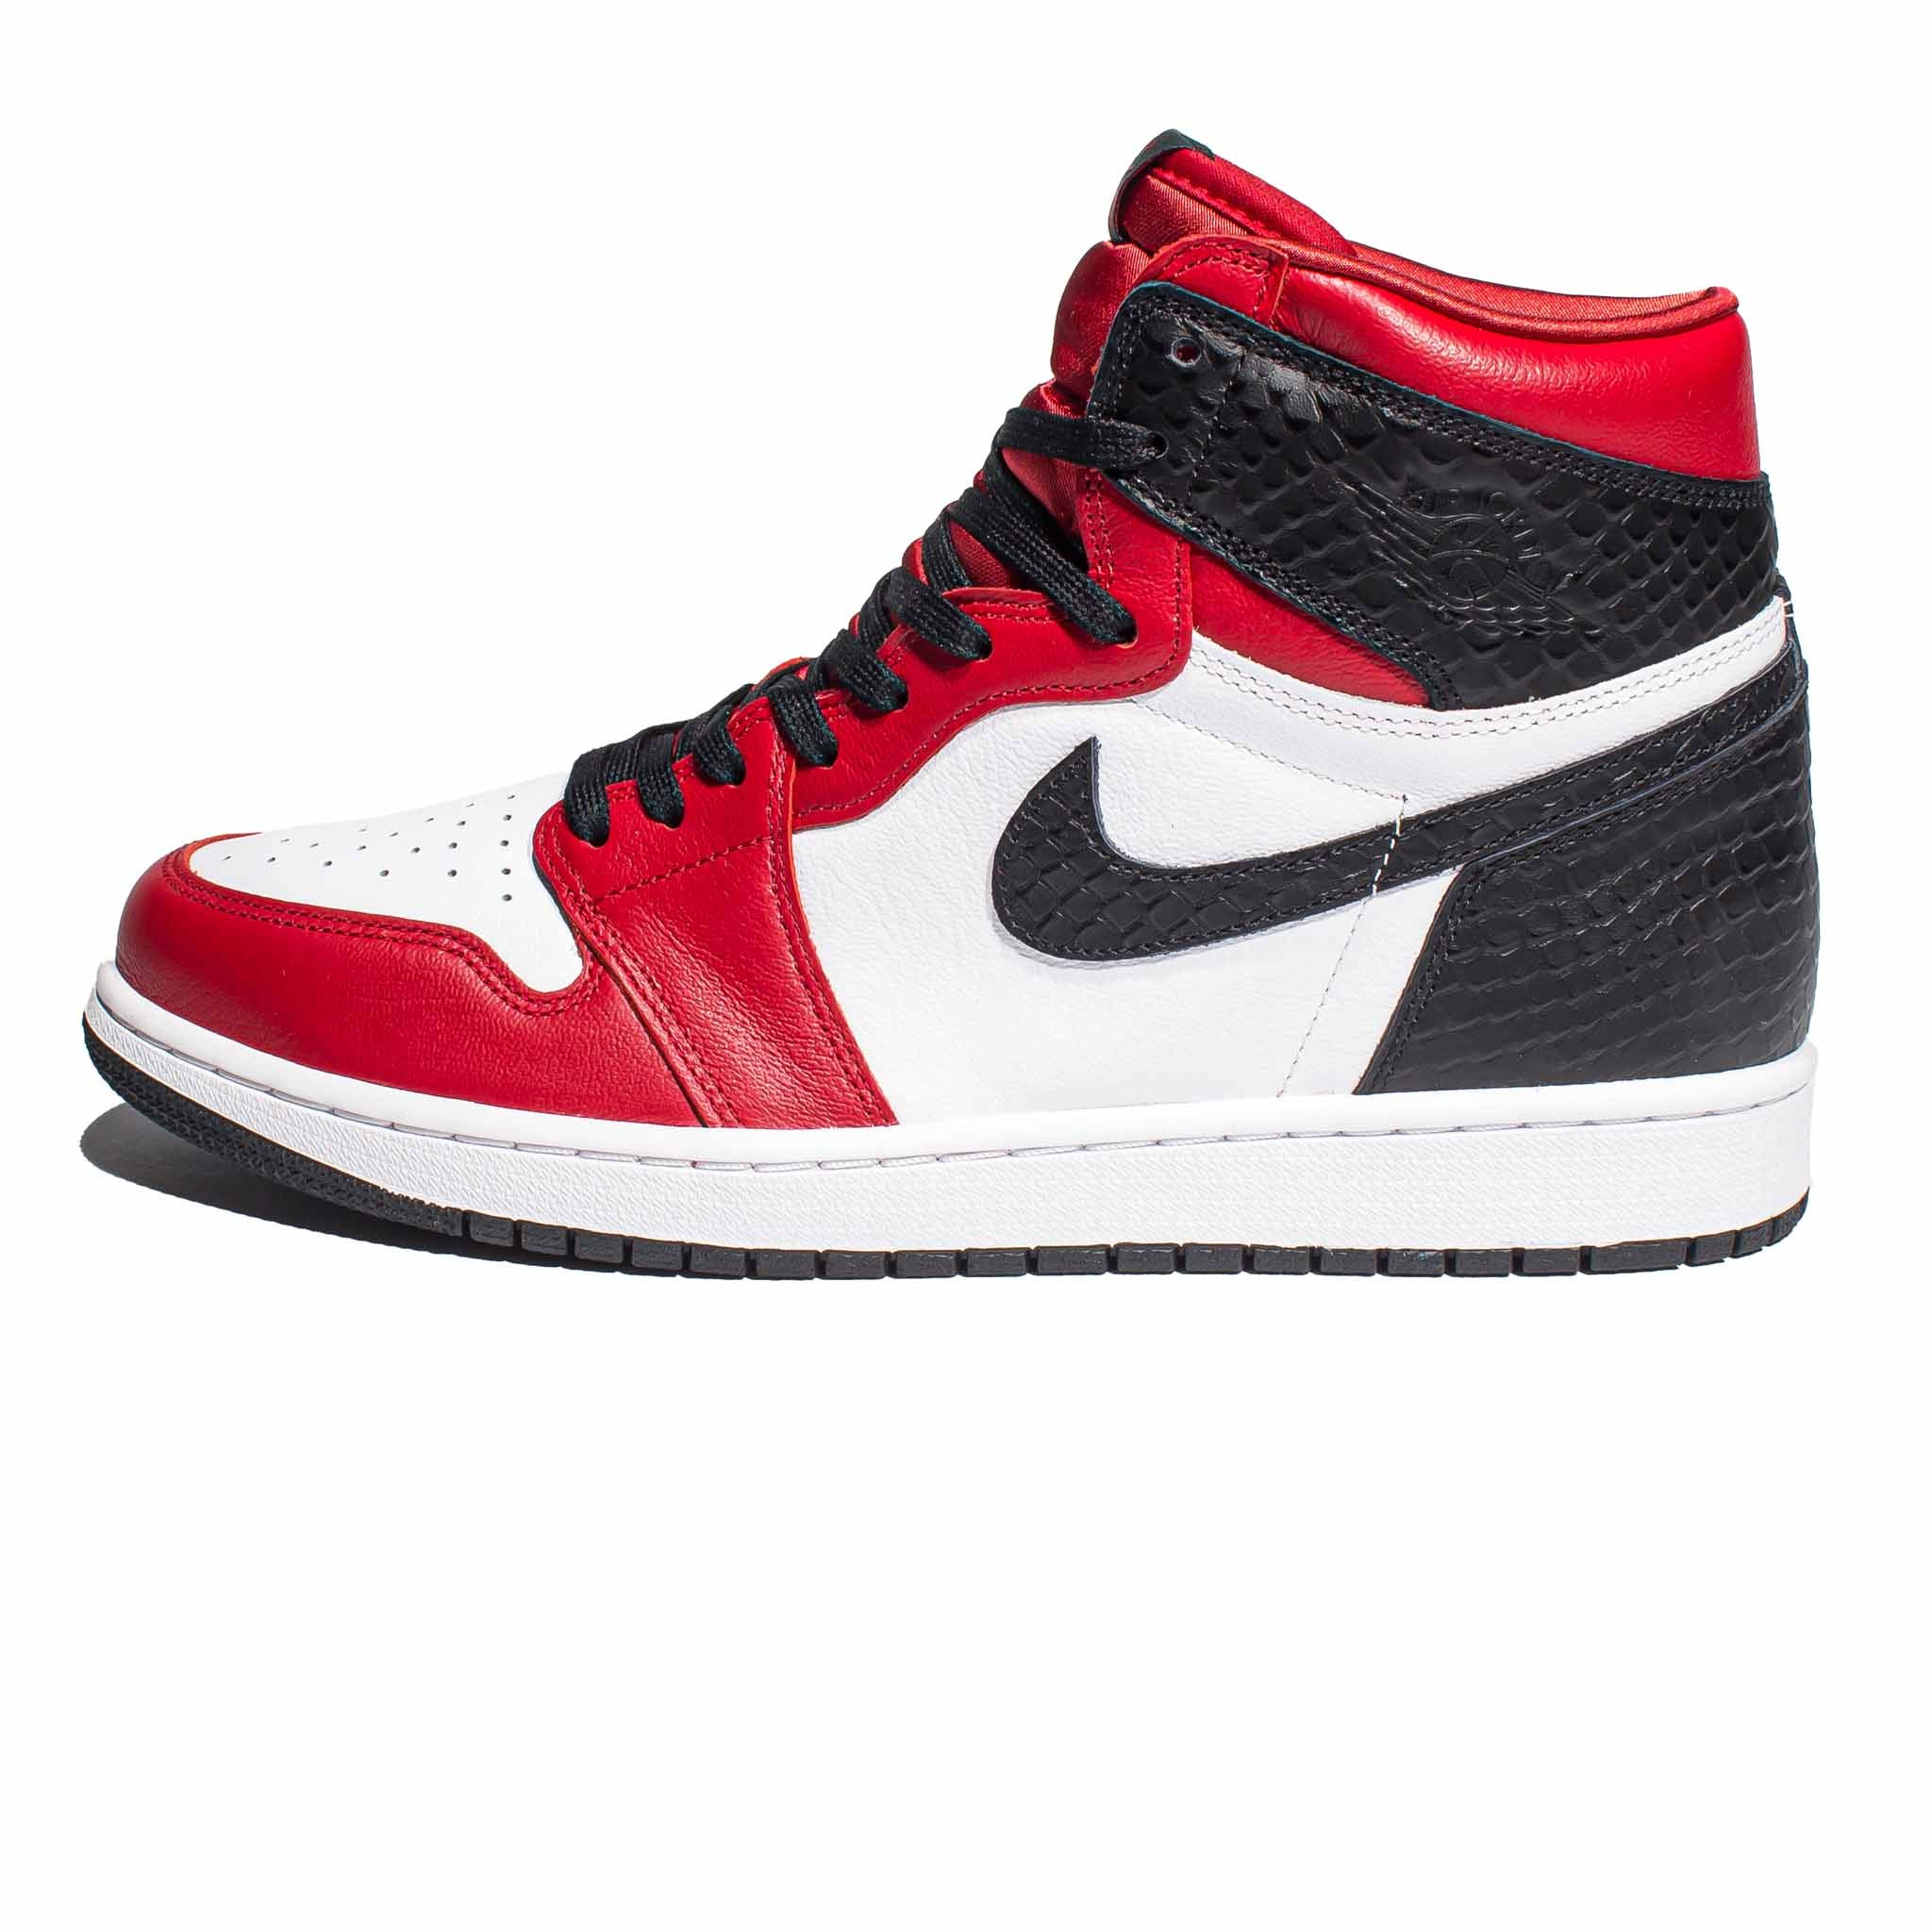 Air Jordan 1 Retro High OG 'Satin Snake'